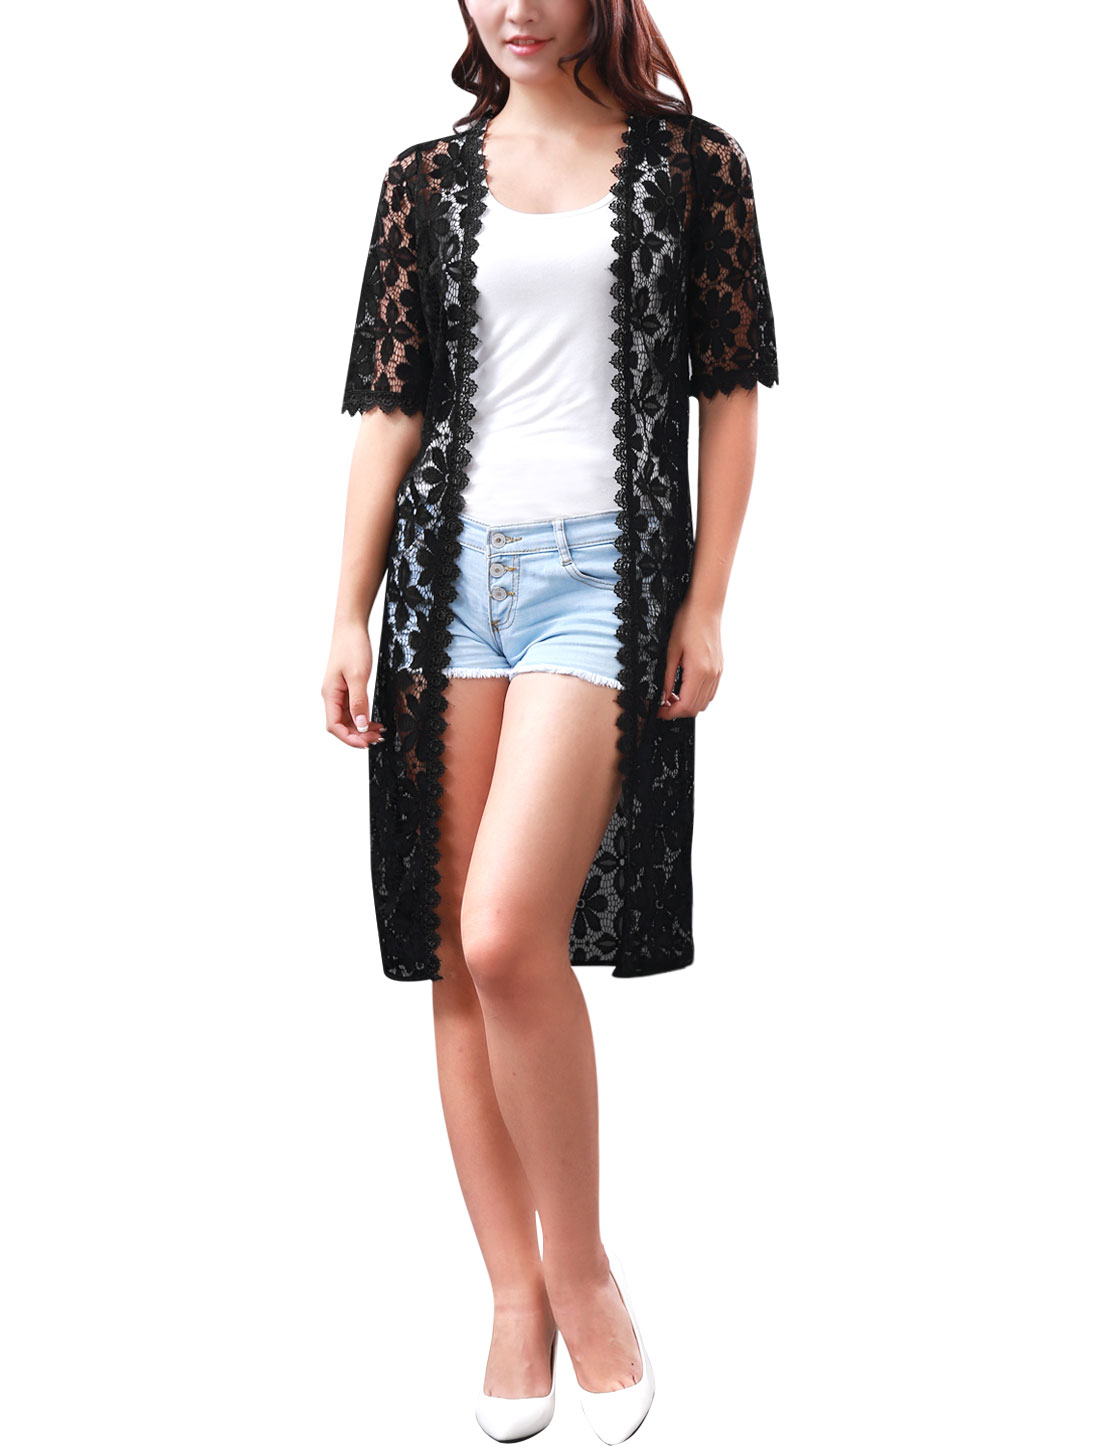 Women Half Sleeves Hollow Out Crochet Trim Long Lace Cardigan Black S